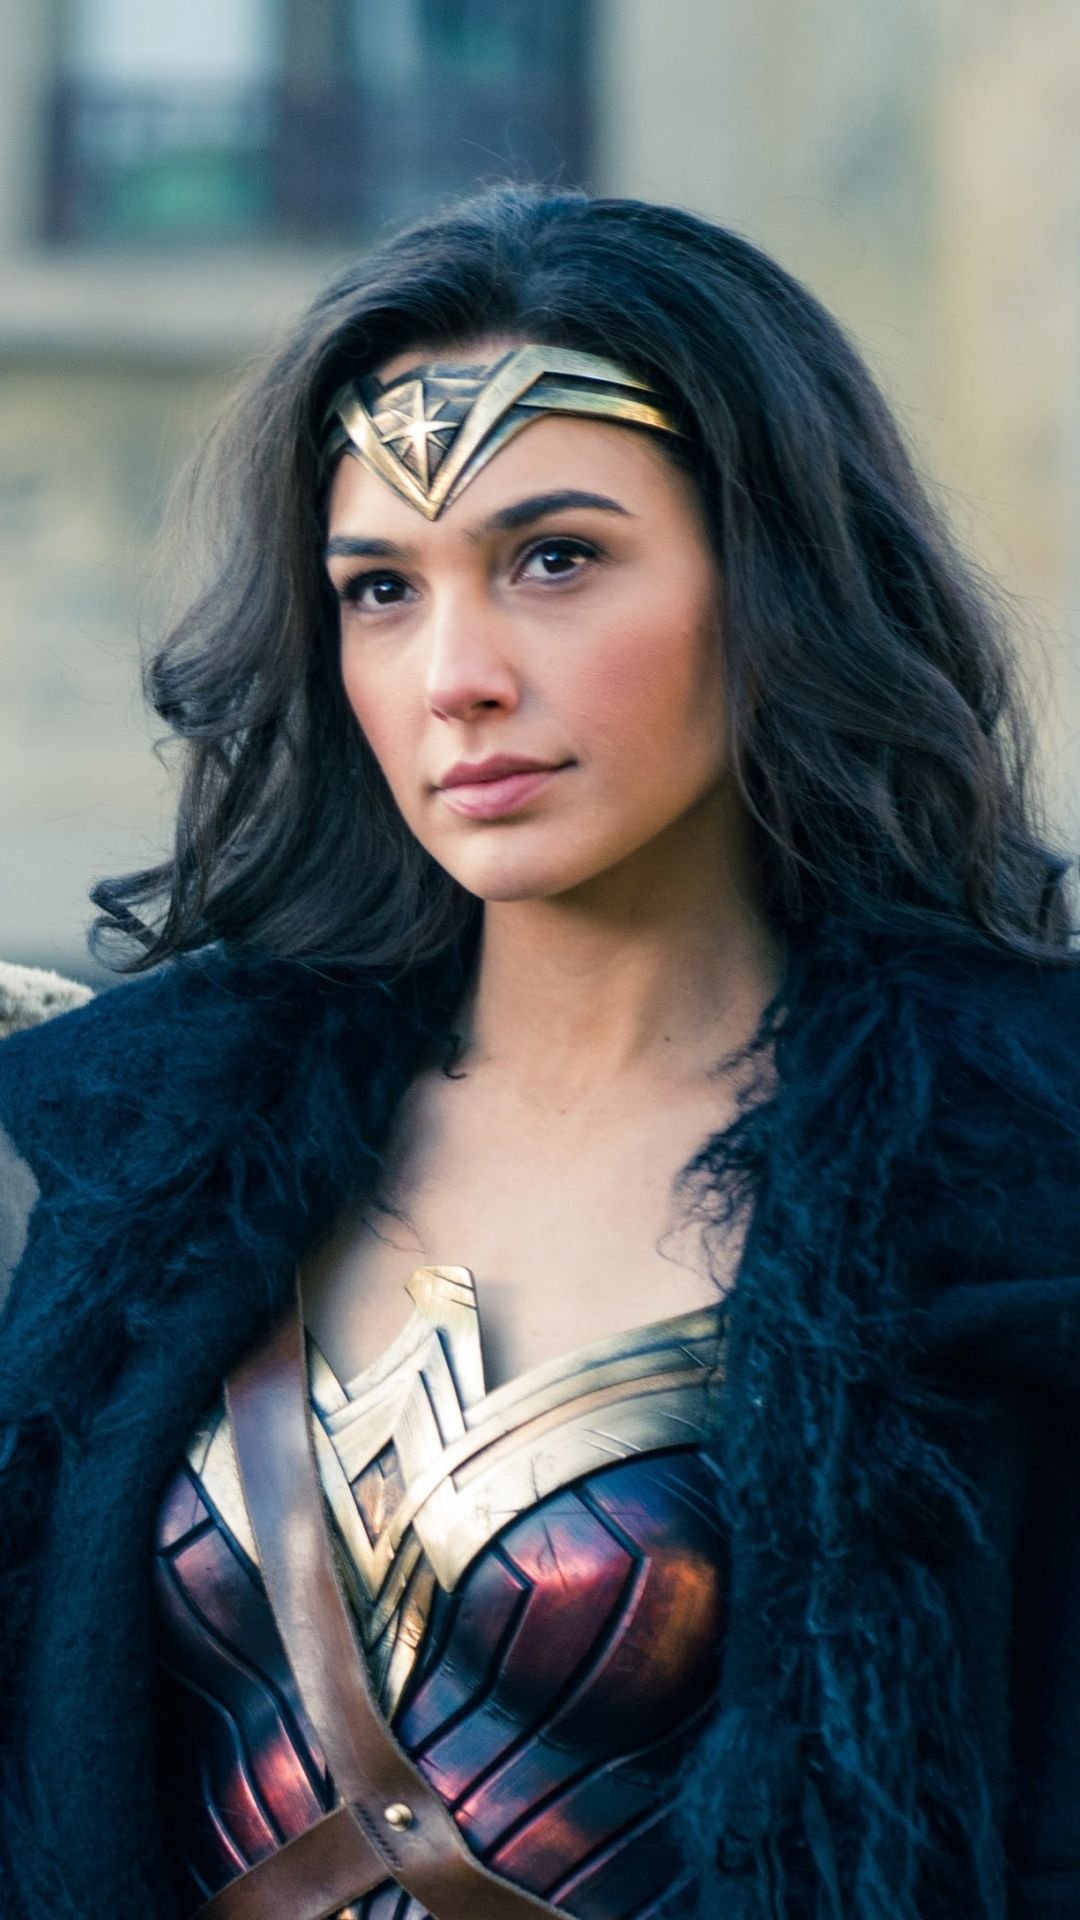 Free Download Gal Gadot In Wonder Woman 1984 4k Ultra Hd Mobile